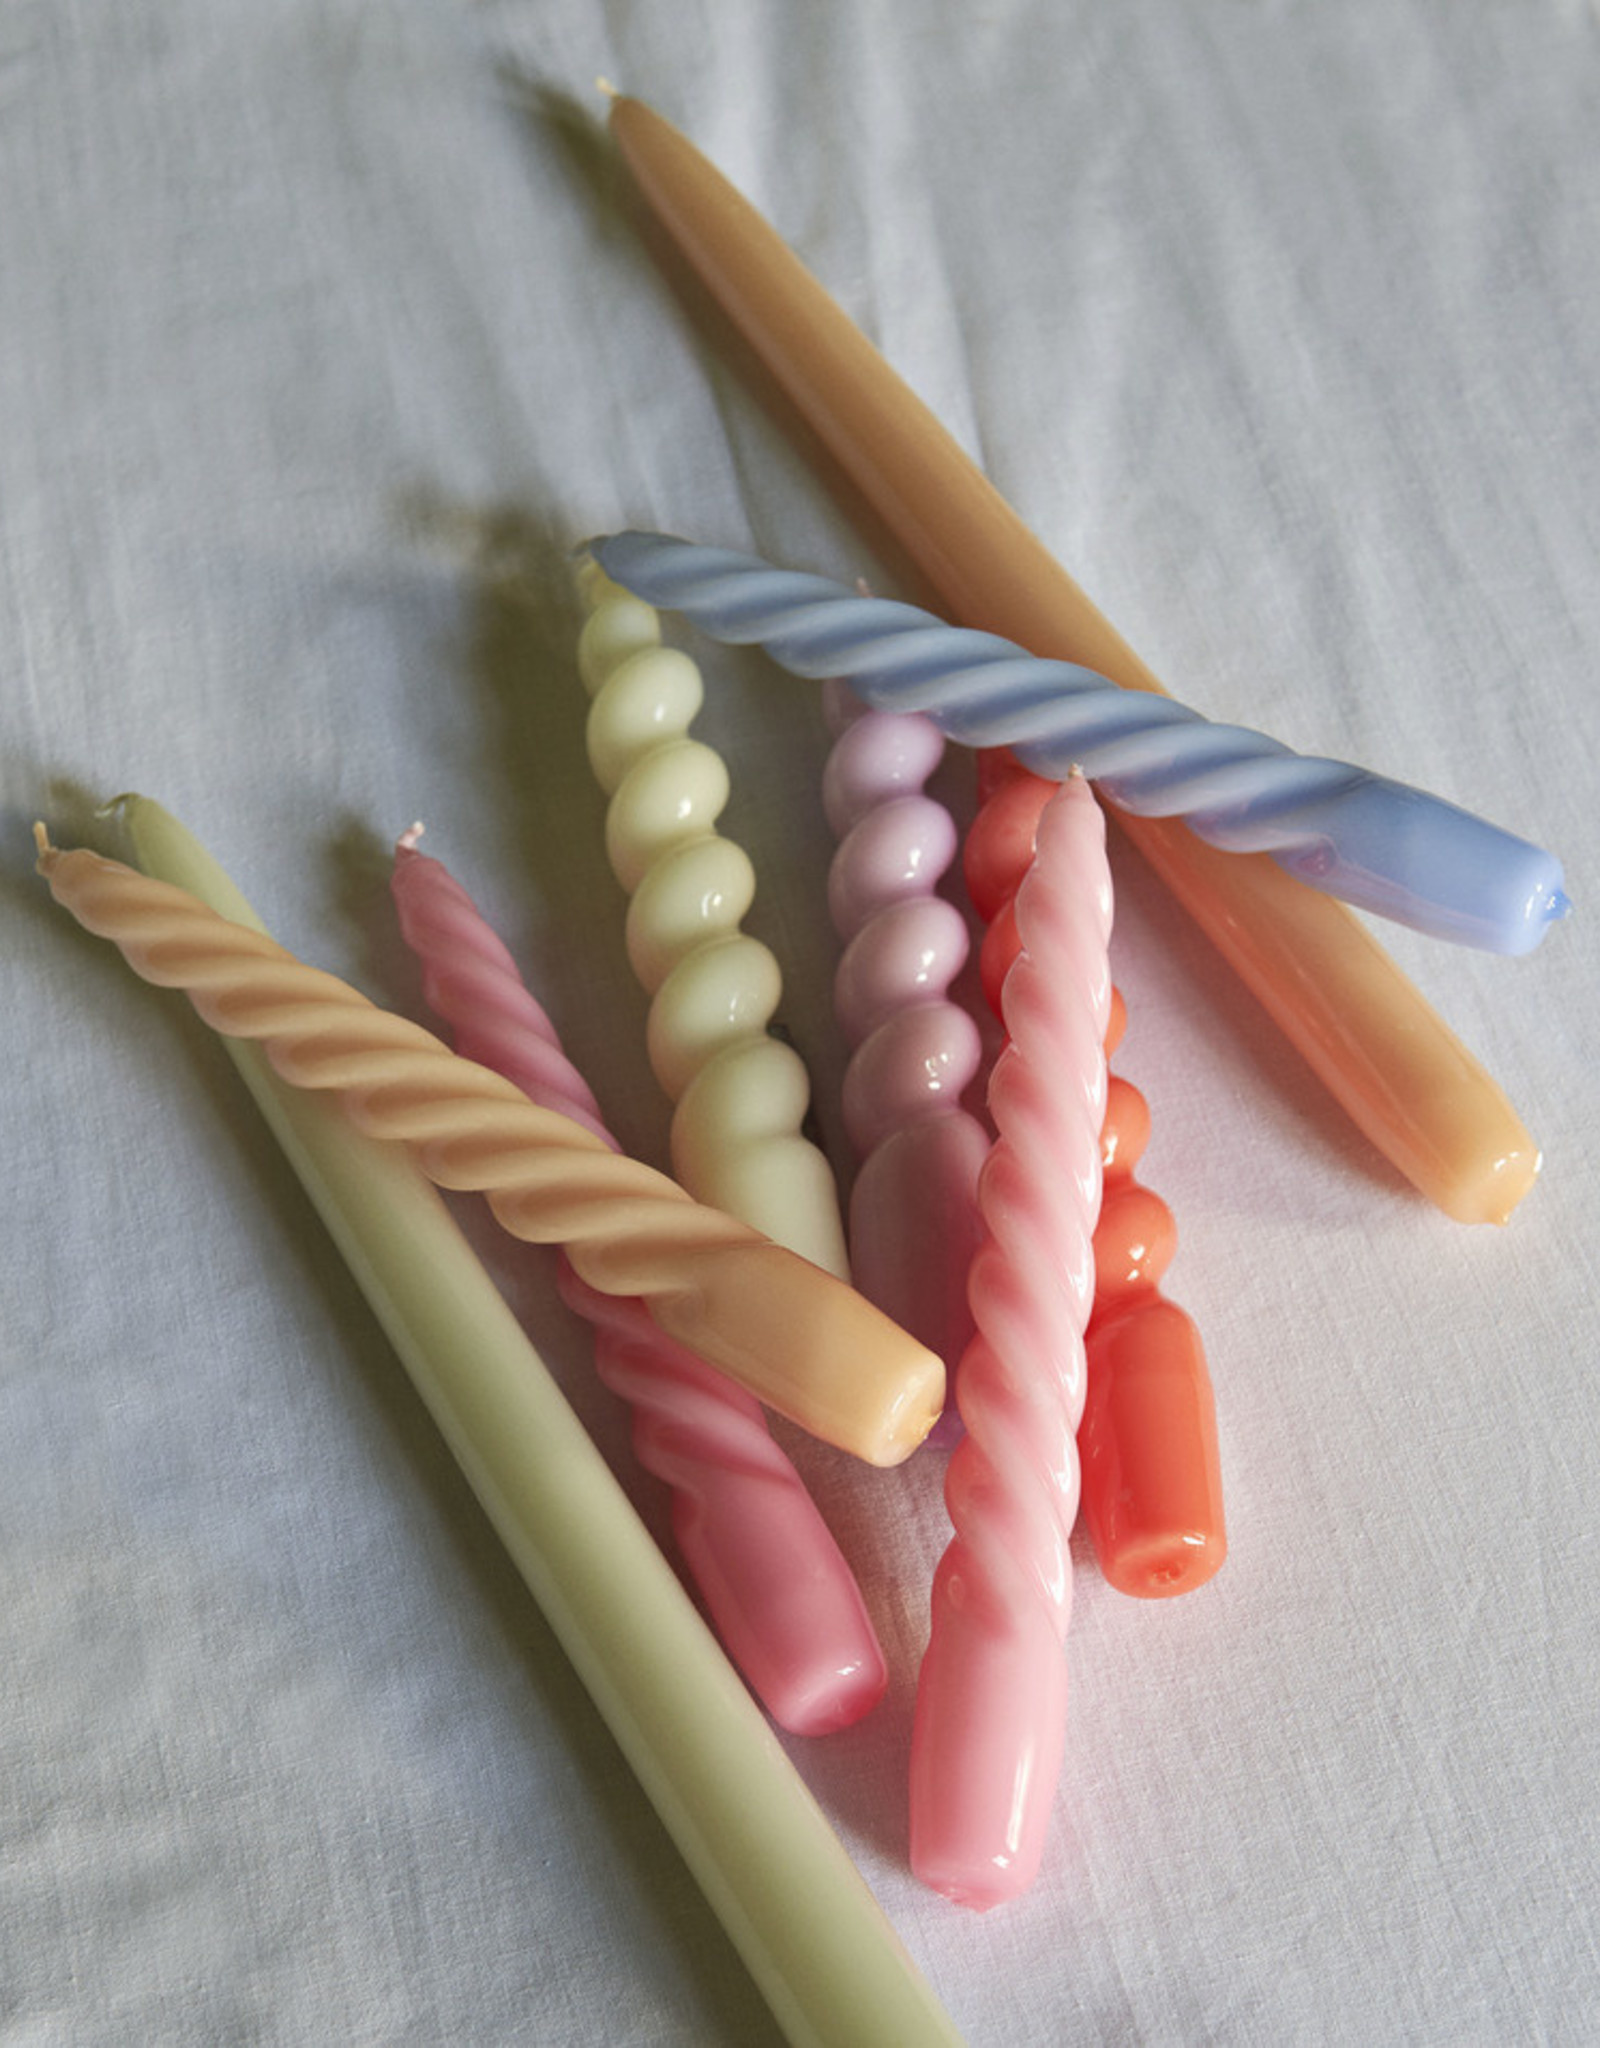 HAY HAY Candle Twist Set of 6 Pcs Arctic Blue Teal Pink